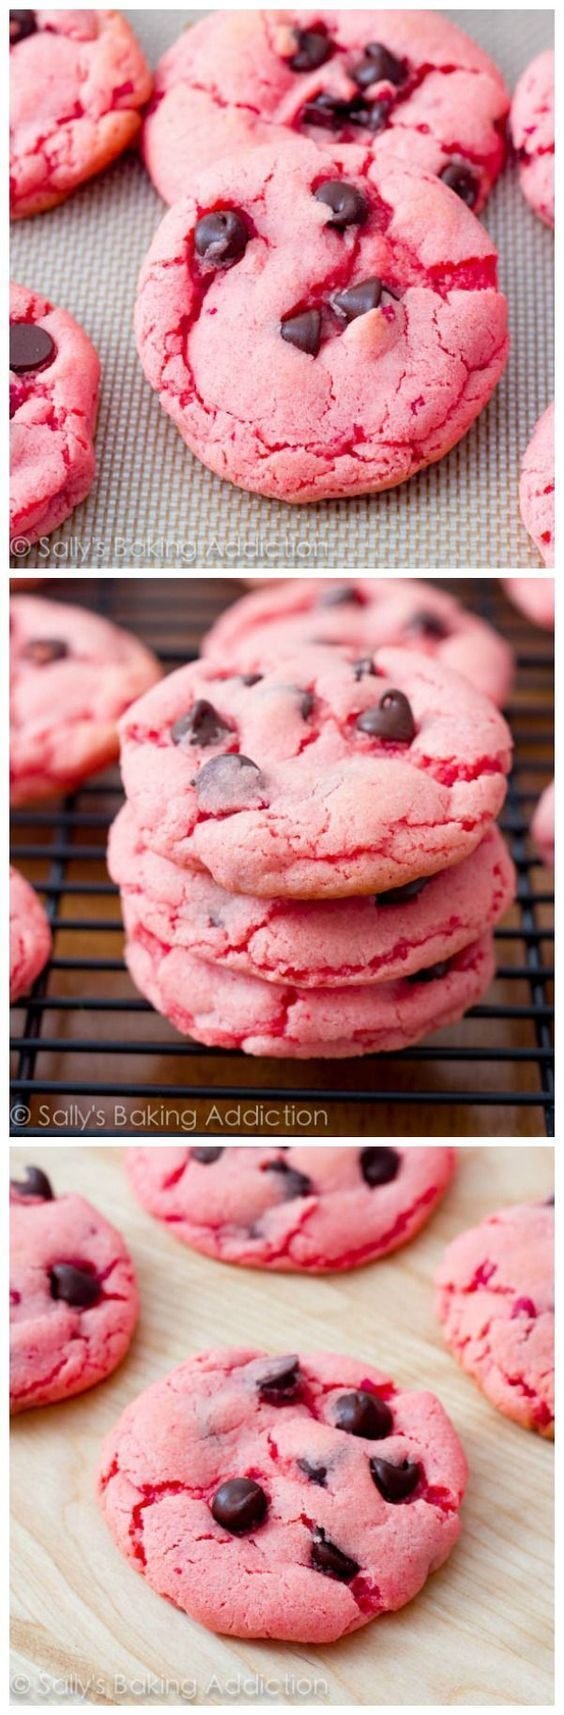 Soft-baked Strawberry Chocolate Chip Cookies for Valentines Day!